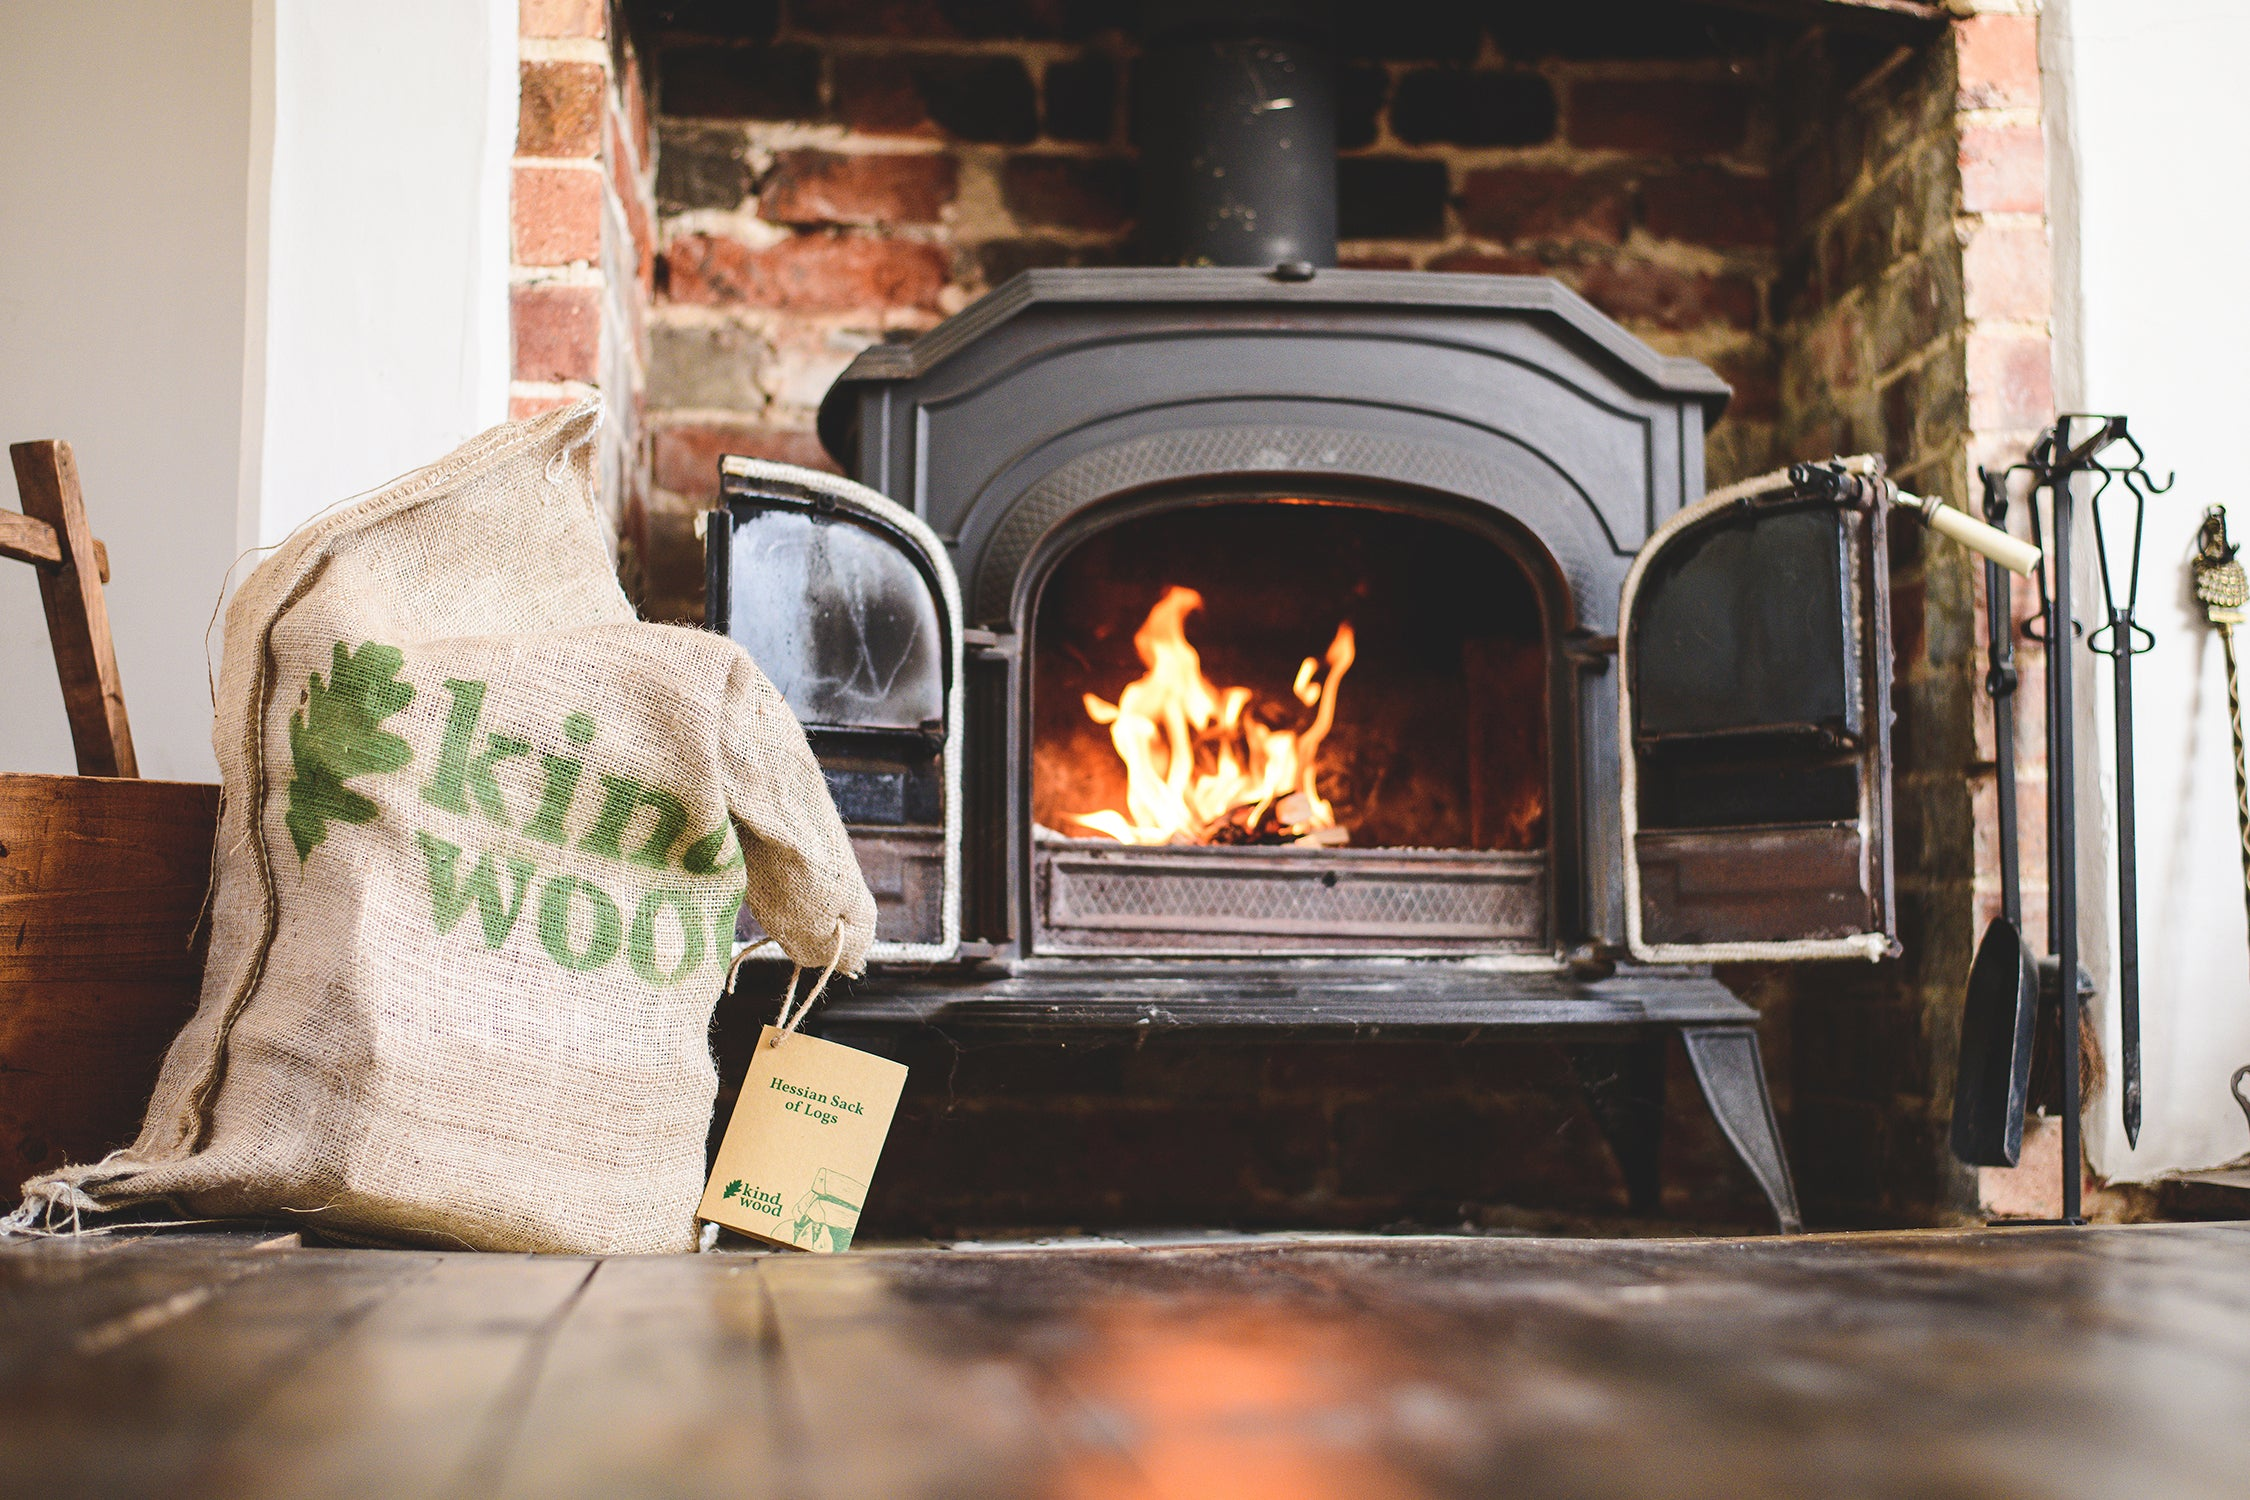 Kindwood - Hessian Sack of Logs - Top-Down Method - Sustainable Firewood